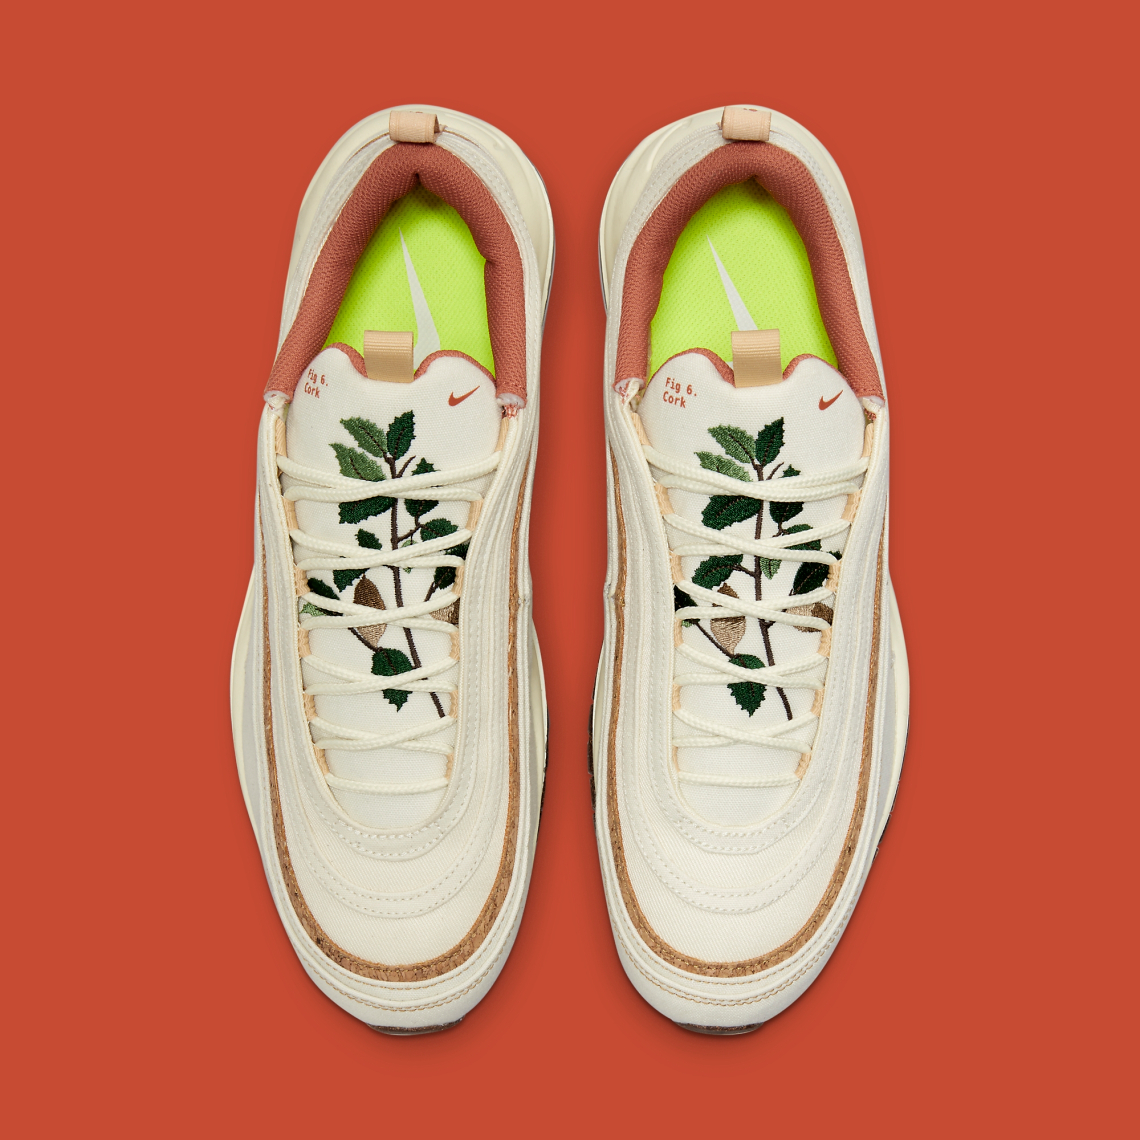 Nike Air Max 97 ''Cork'' - ''Coconut Milk'' - DC3986-100